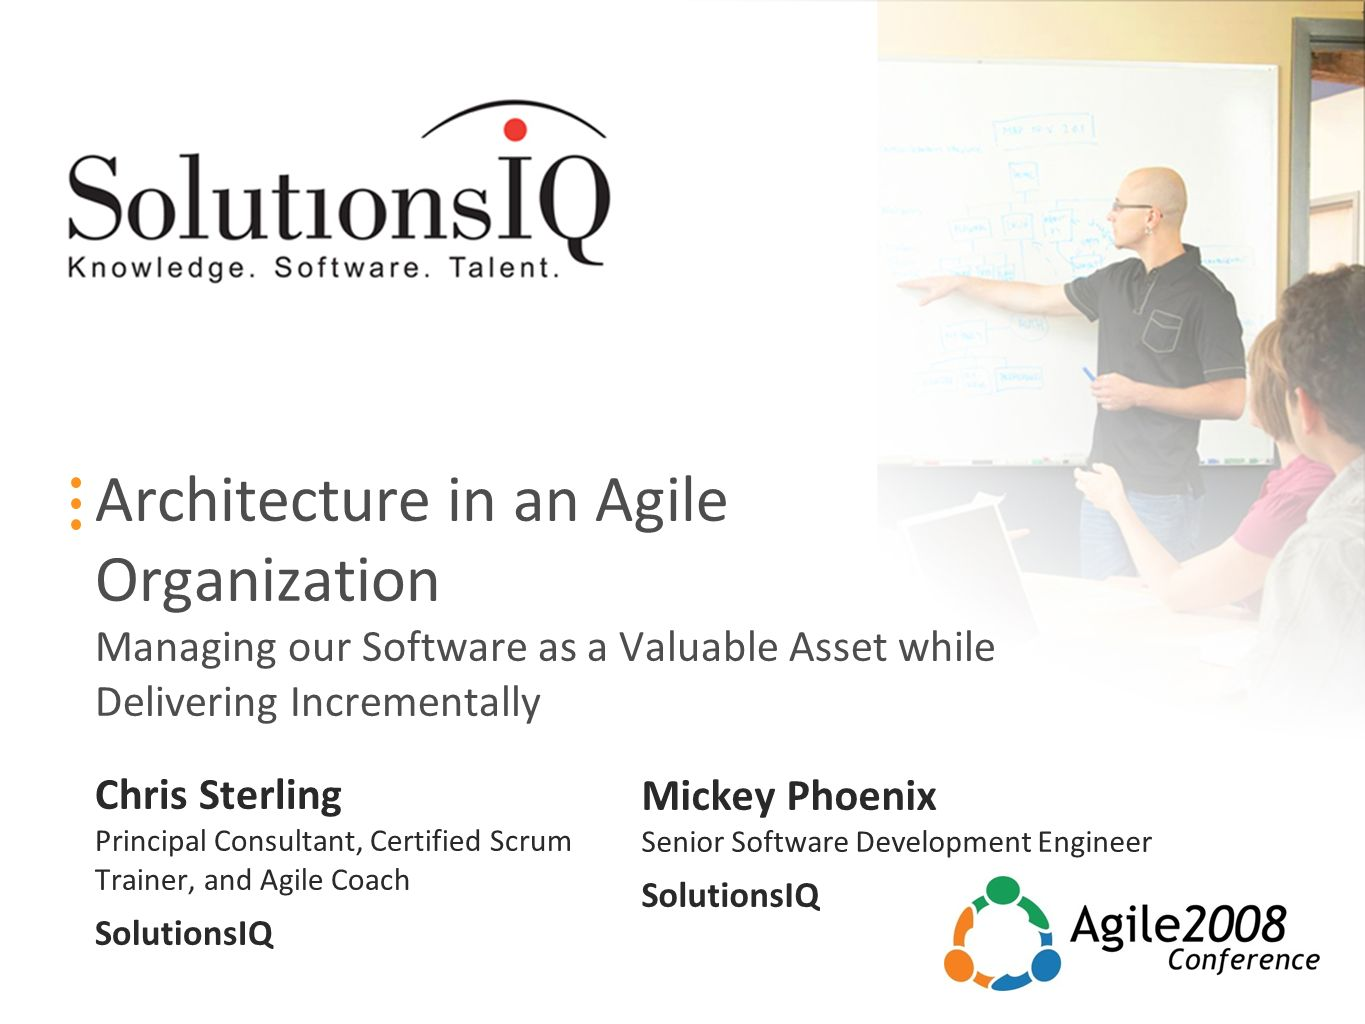 Architecture in an Agile Organization Managing our Software as a Valuable Asset while Delivering Incrementally Chris Sterling Principal Consultant, Certified Scrum Trainer, and Agile Coach SolutionsIQ Mickey Phoenix Senior Software Development Engineer SolutionsIQ